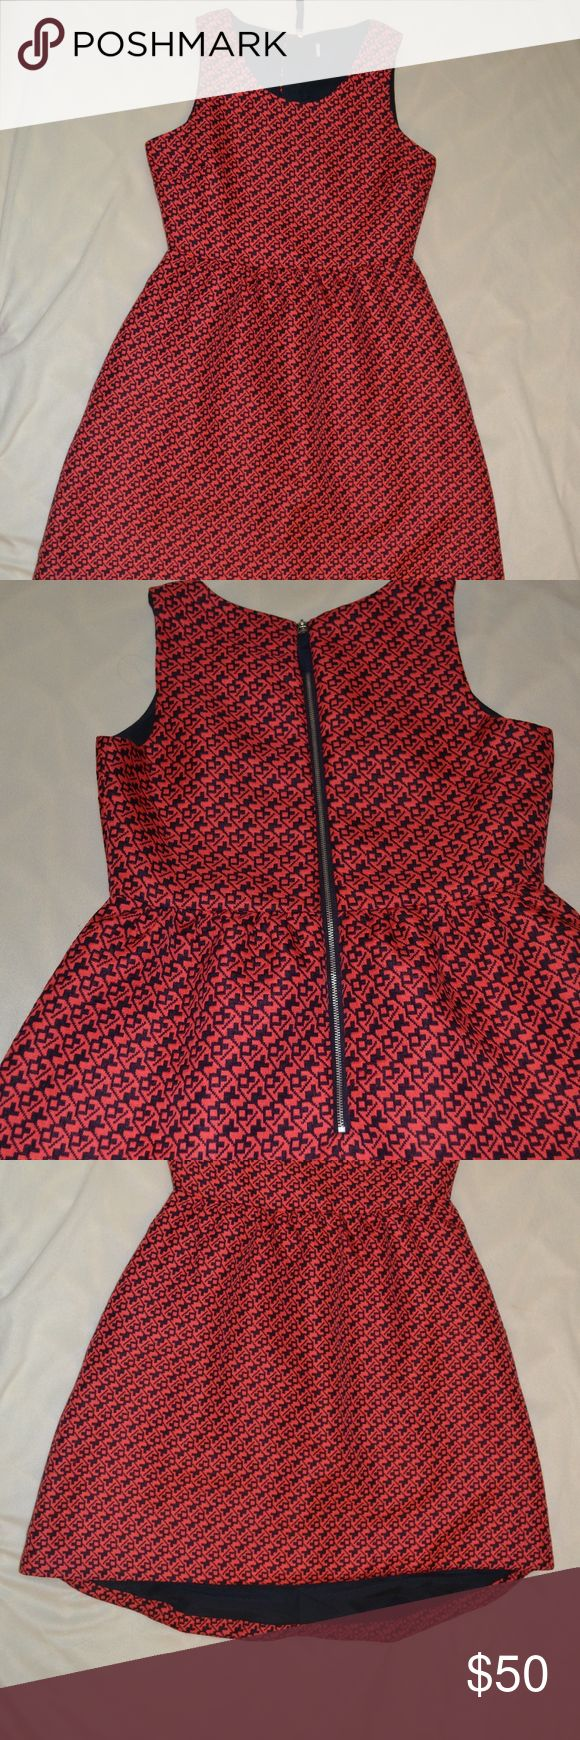 Coral Anthropology Dress Coal and navy houndstooth print Size 4/6 Worn once or twice  Thick, embroidered material I'm 5'3 and it comes down to just above my knee in front, and just below my knee in back Anthropologie Dresses